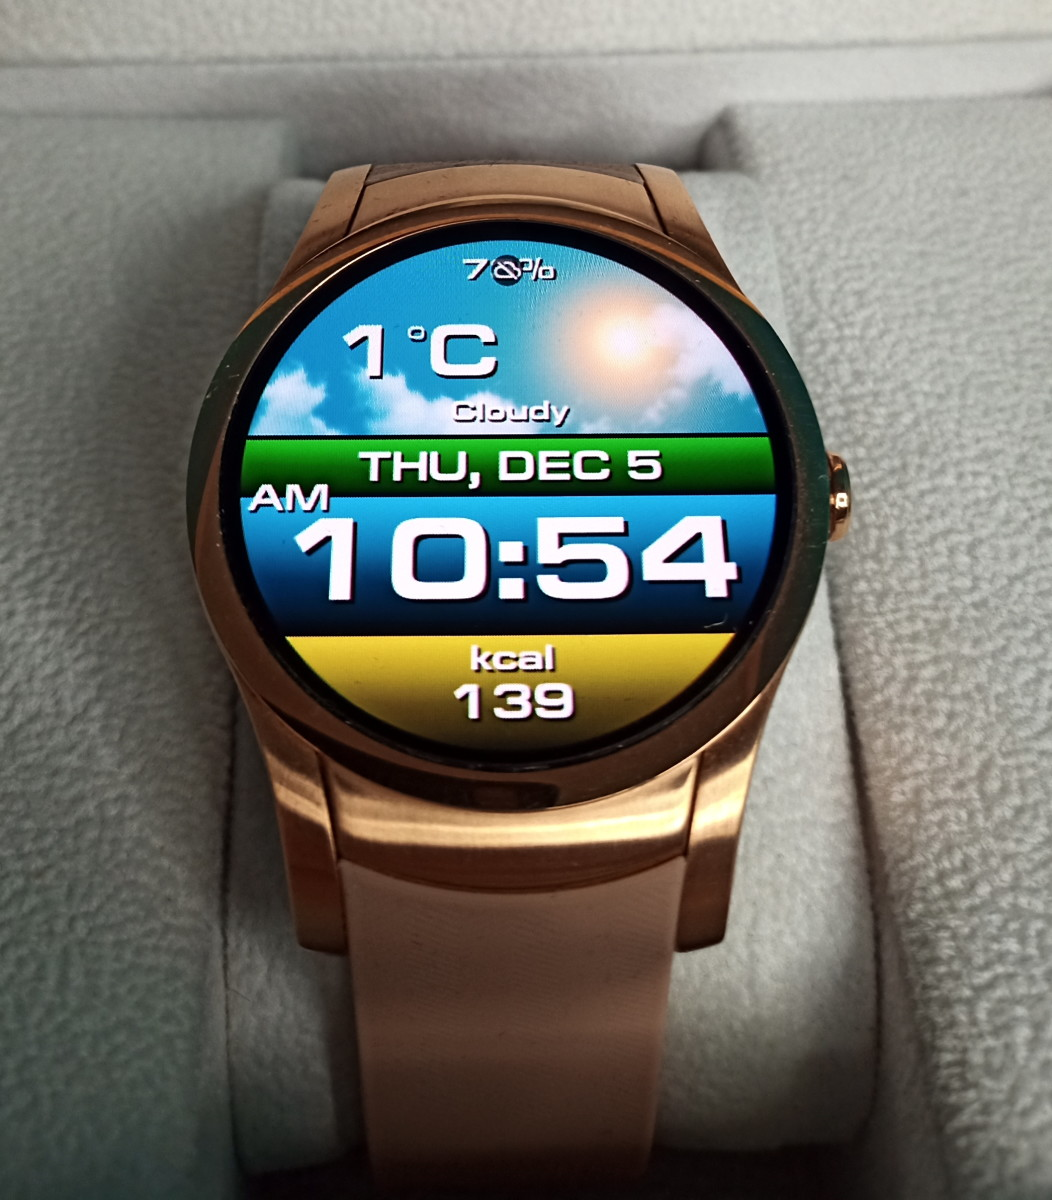 Wear24 smartwatch using an inexpensive aftermarket watch face I downloaded.